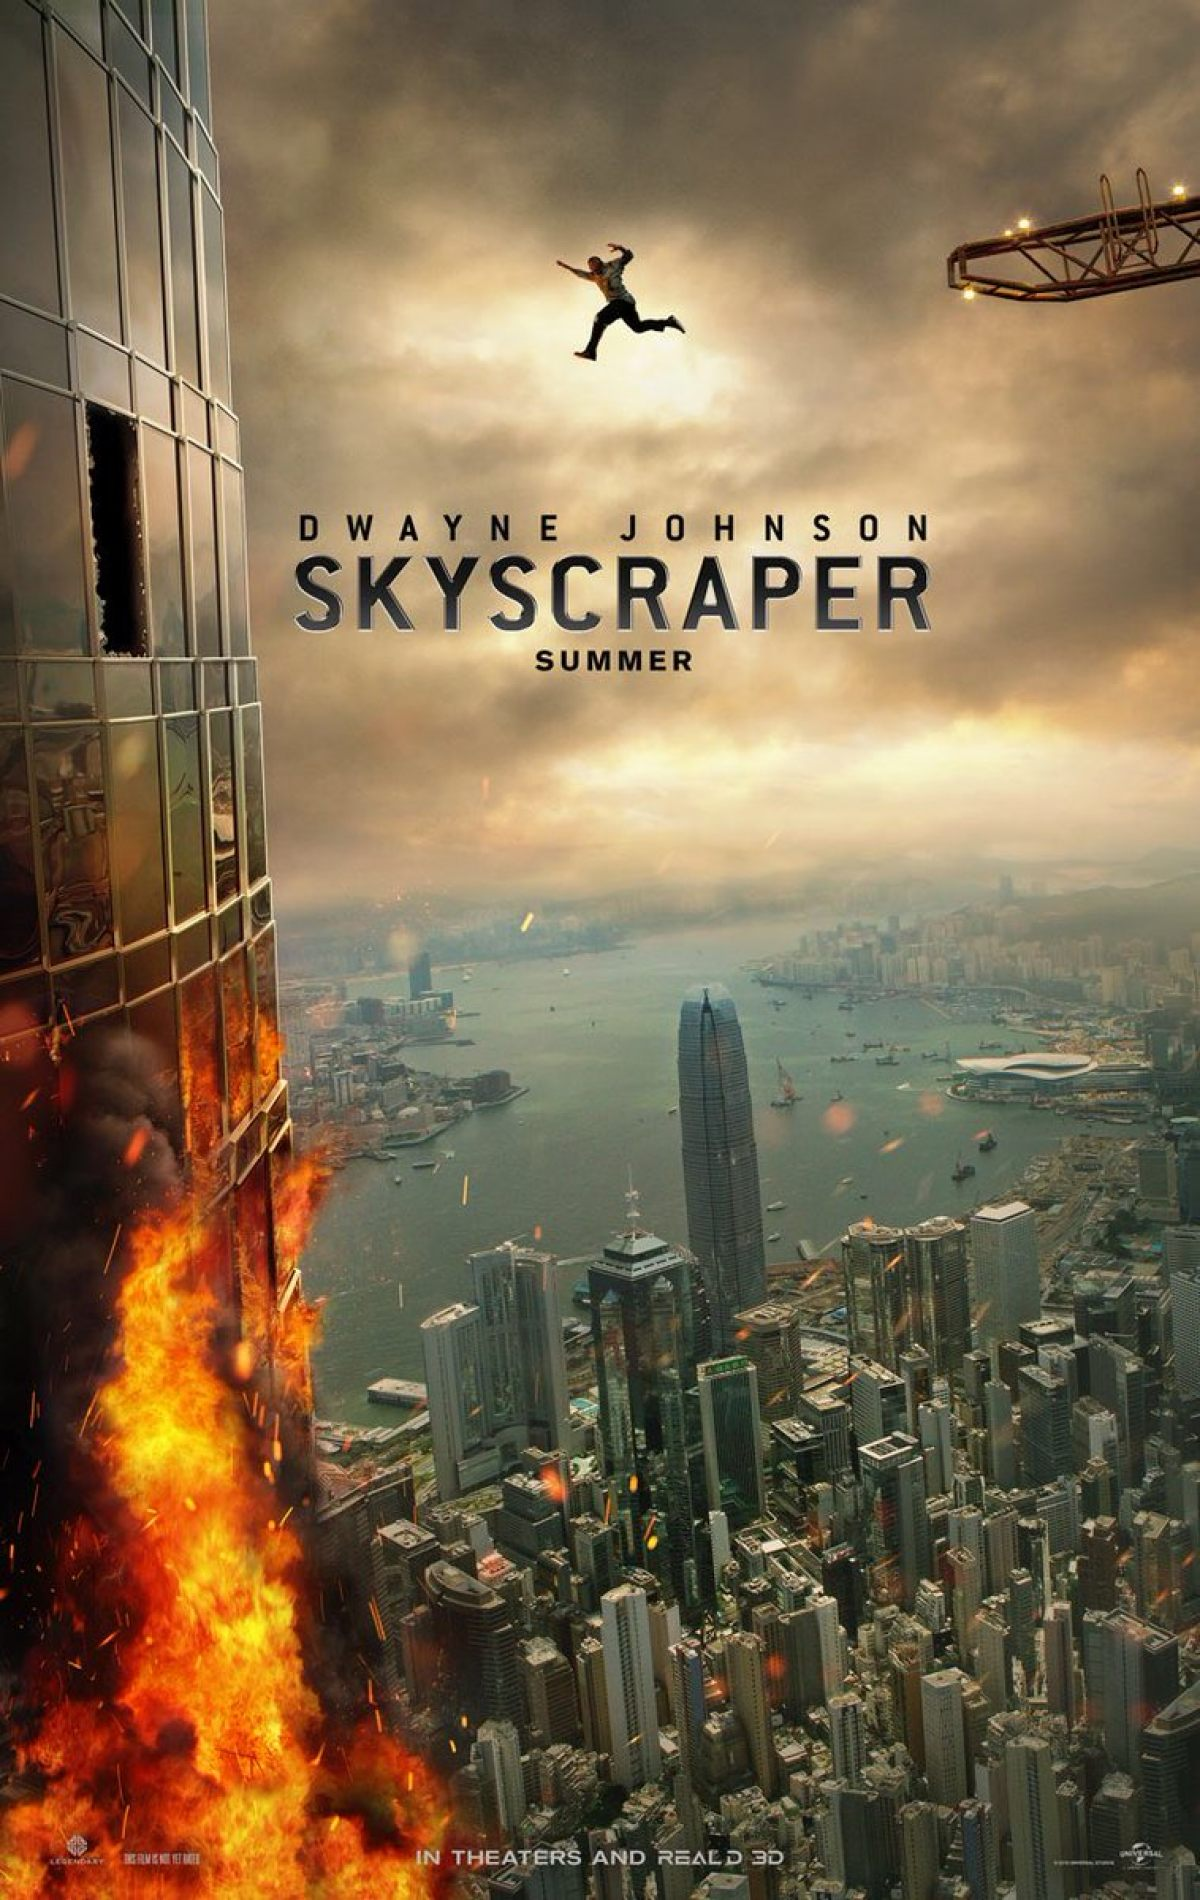 First Skyscraper Poster Will Make You Believe The Rock Can